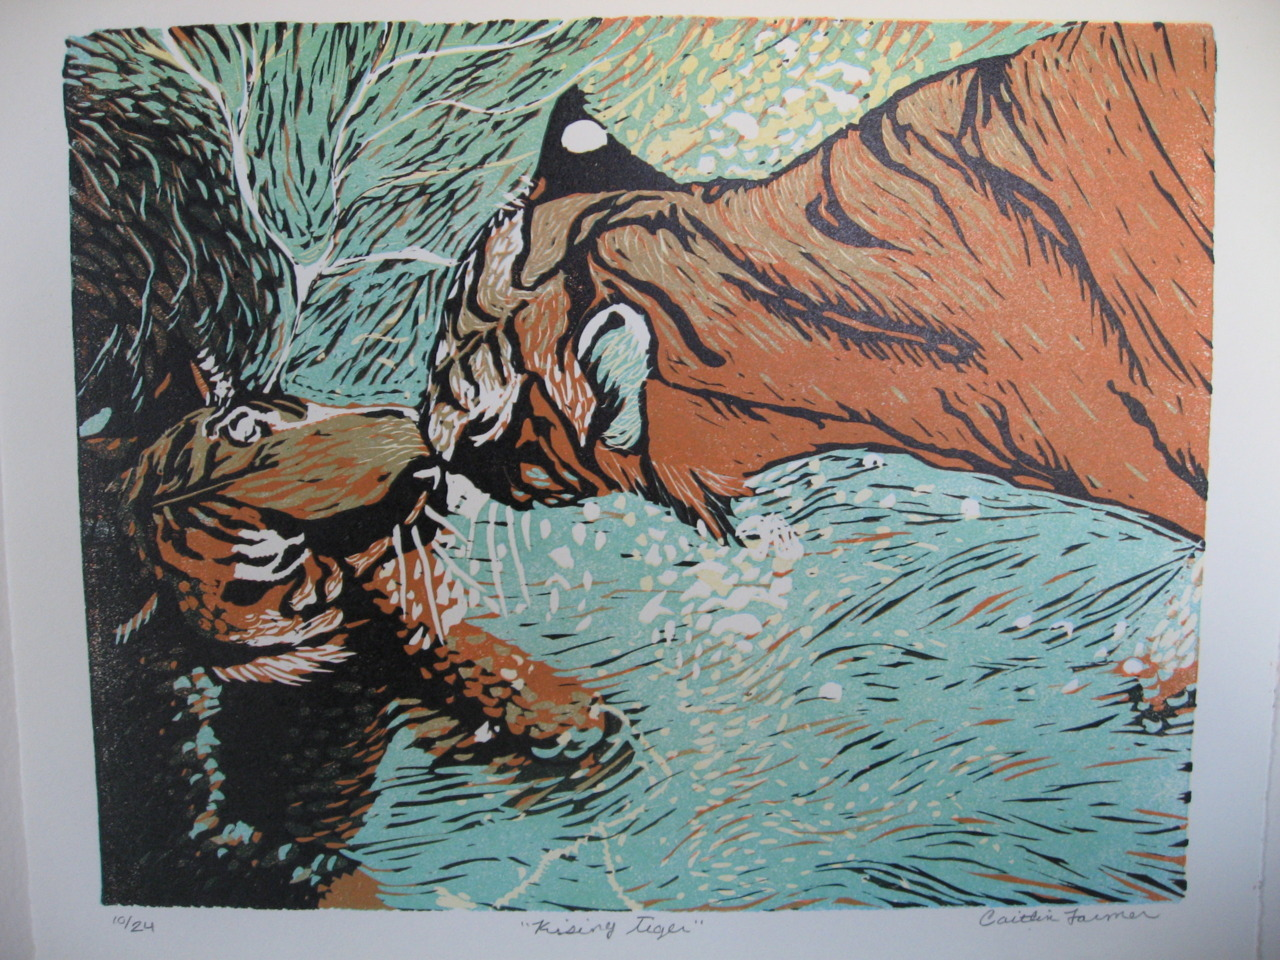 calamitycait:  Kissing Tiger by Caitlin Farmer on Etsy $50. 6 color reduction linocut. 11x14.